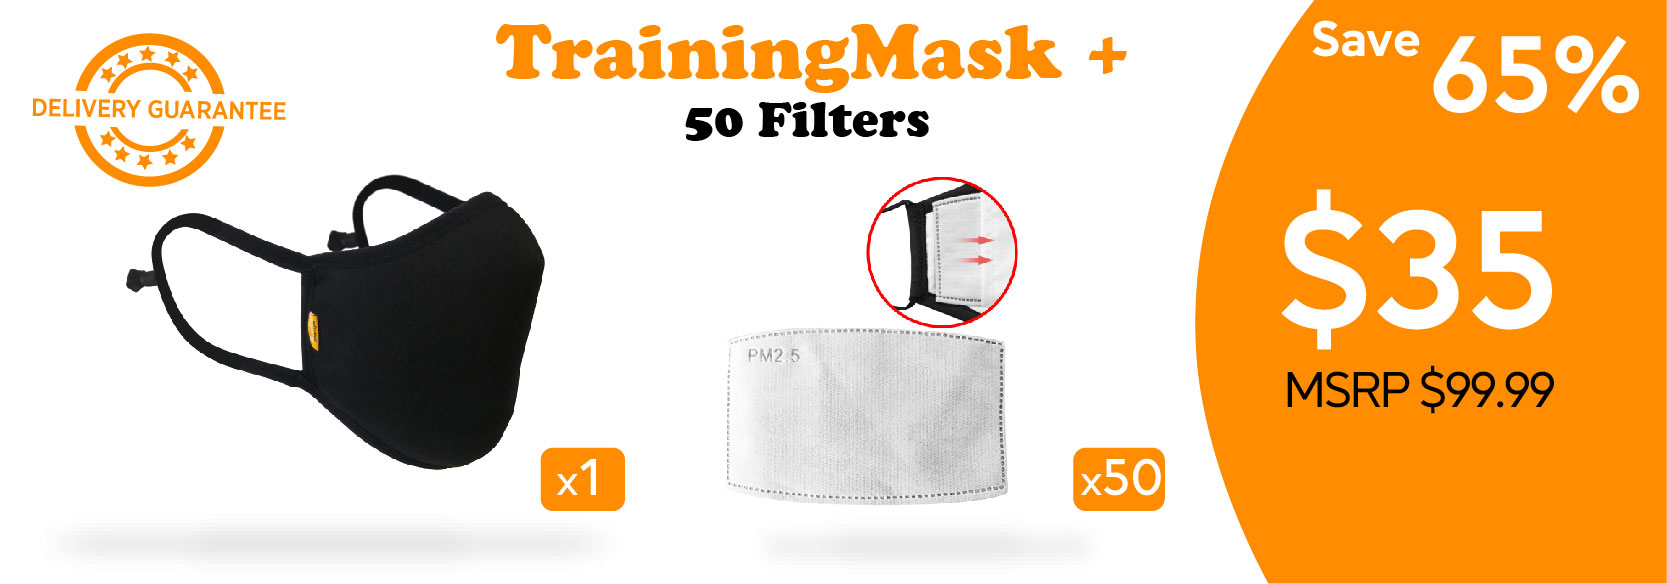 perk posters_Training Mask + 50 Filters